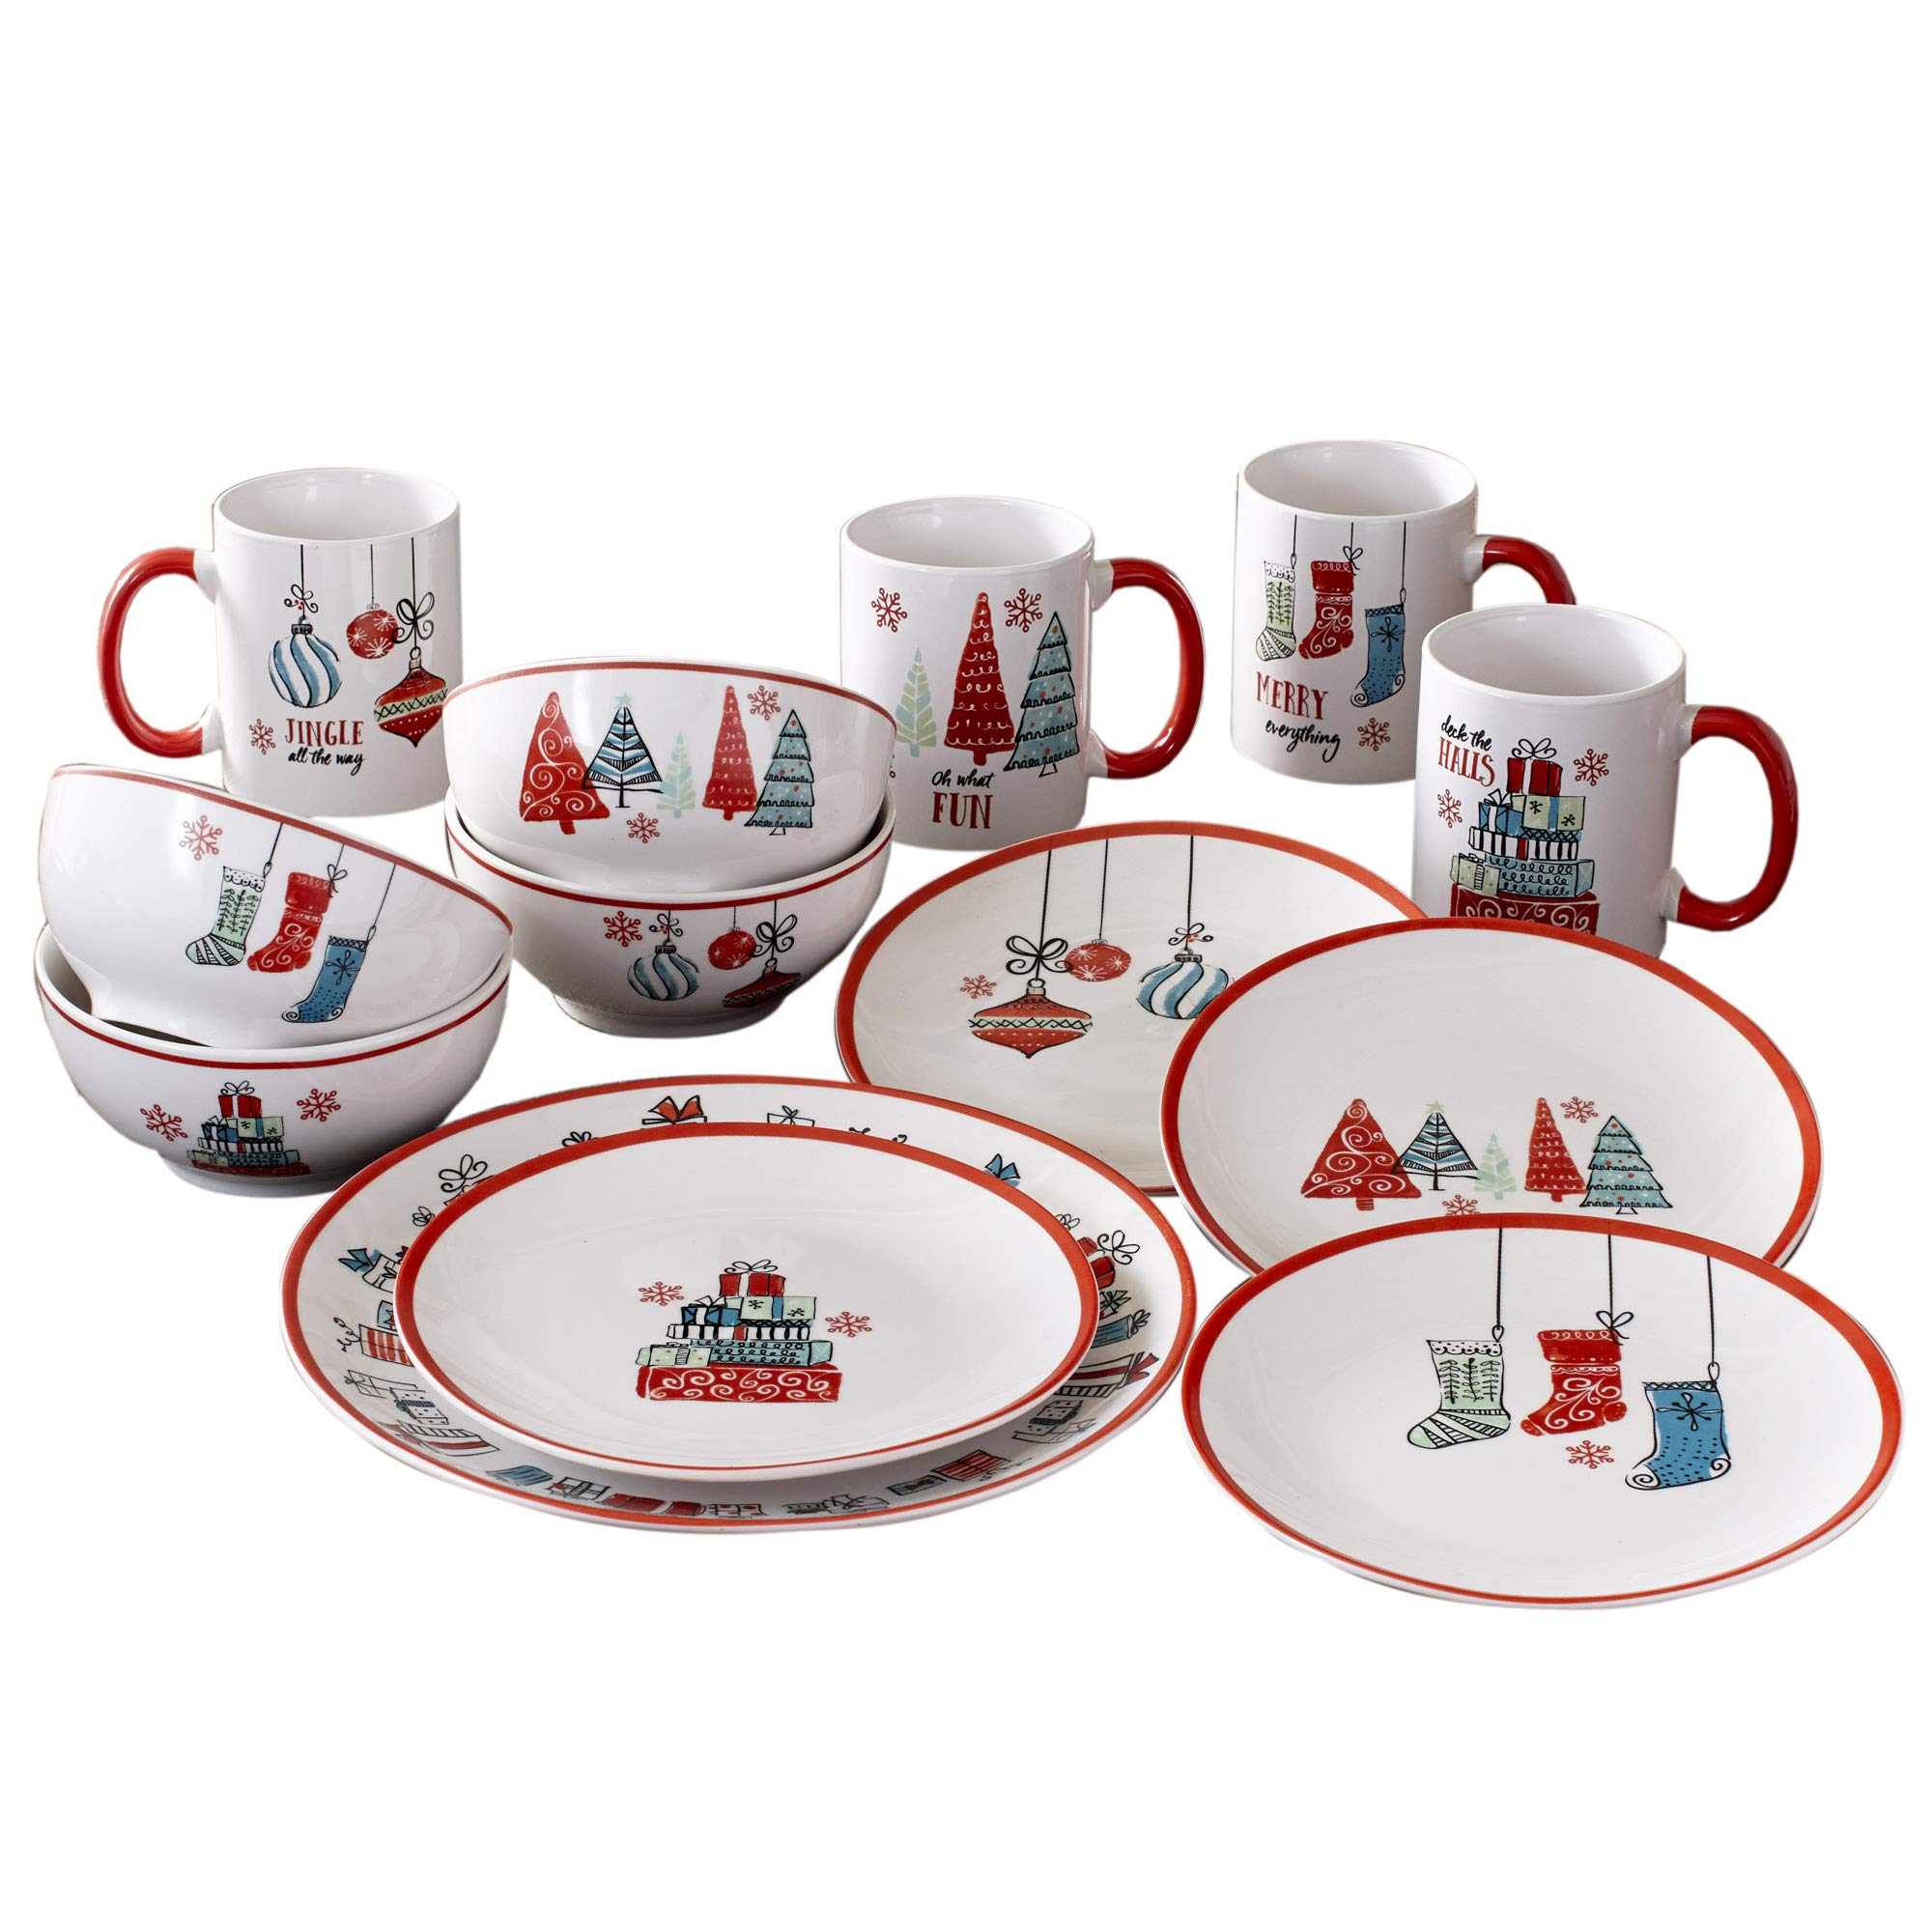 Christmas Tableware Party Decoration Set of Four 8-Inch Ceramic Holiday Snowman Plates in Gift Box